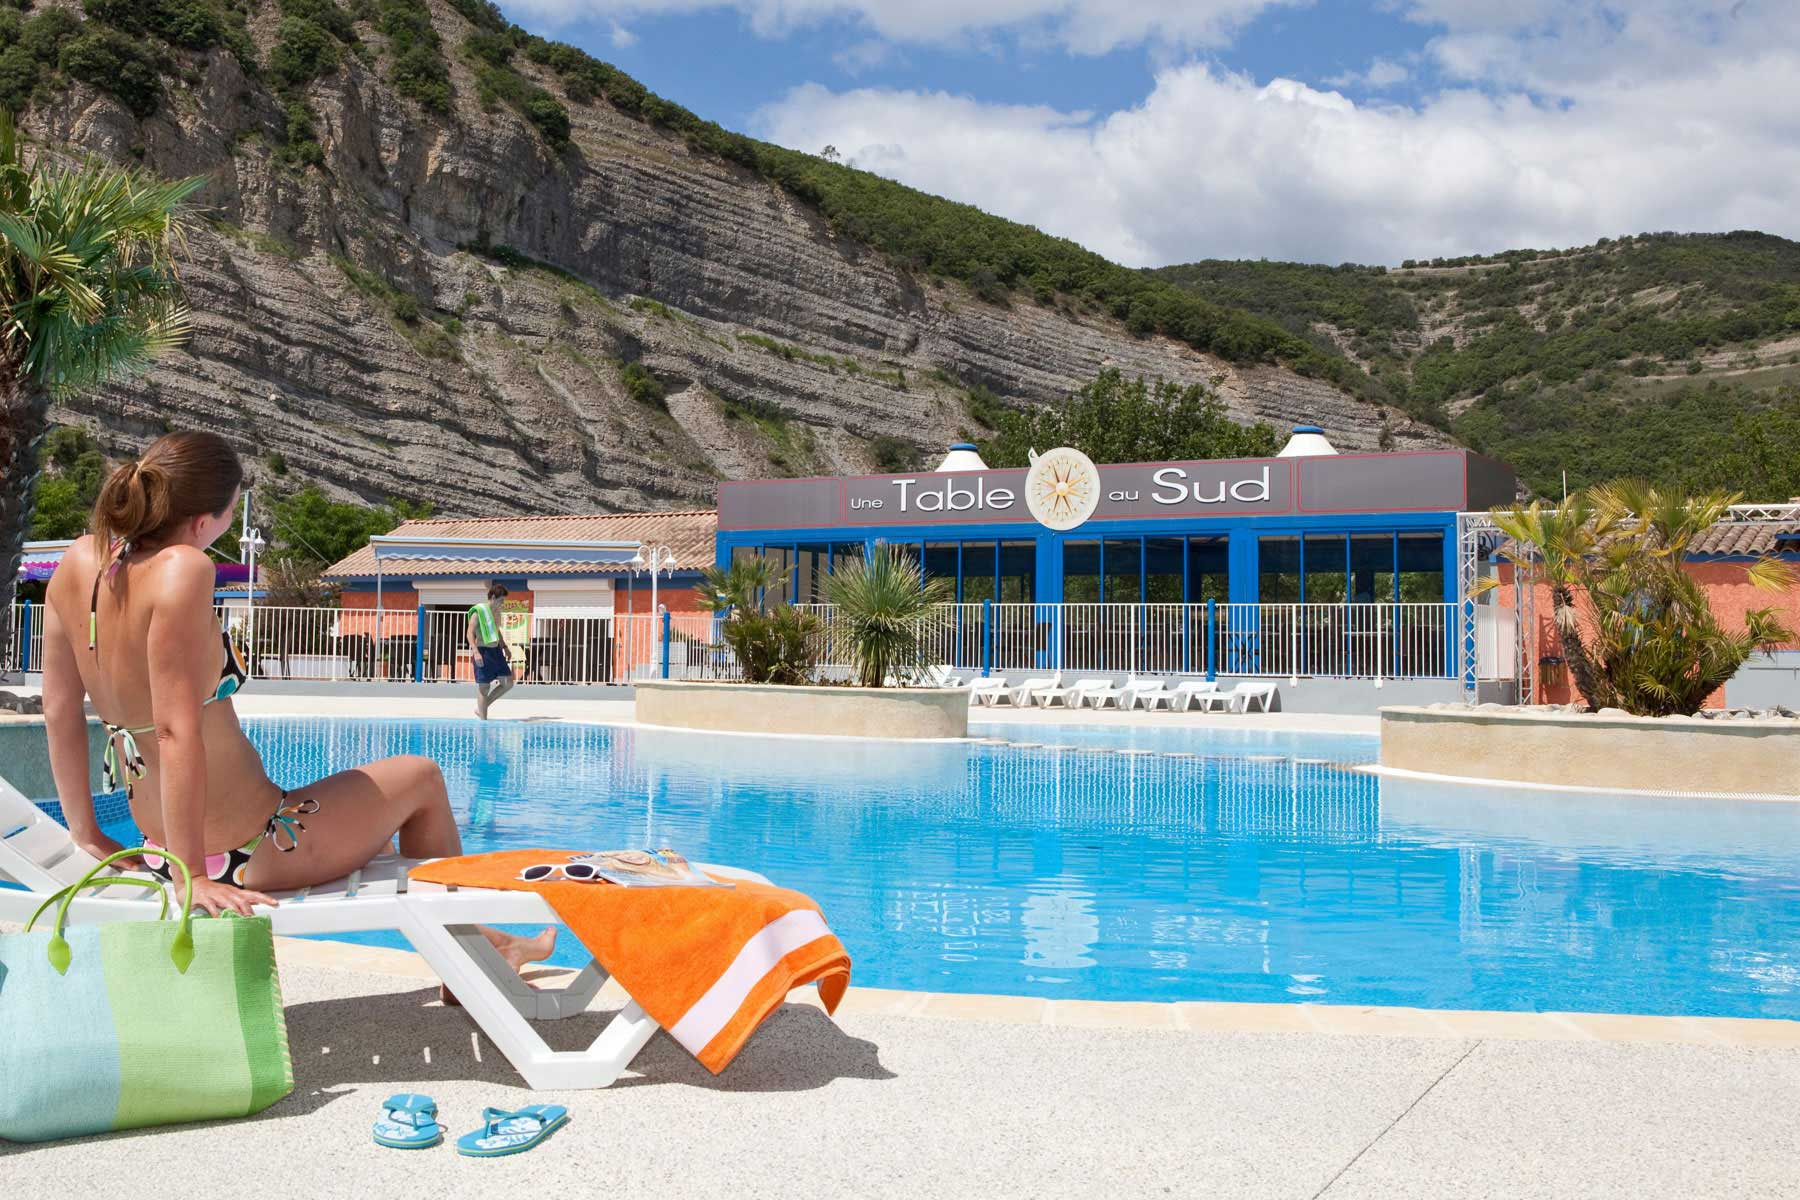 Vallon pont d 39 arc camping la plage fleurie plein air for Club vacances ardeche avec piscine